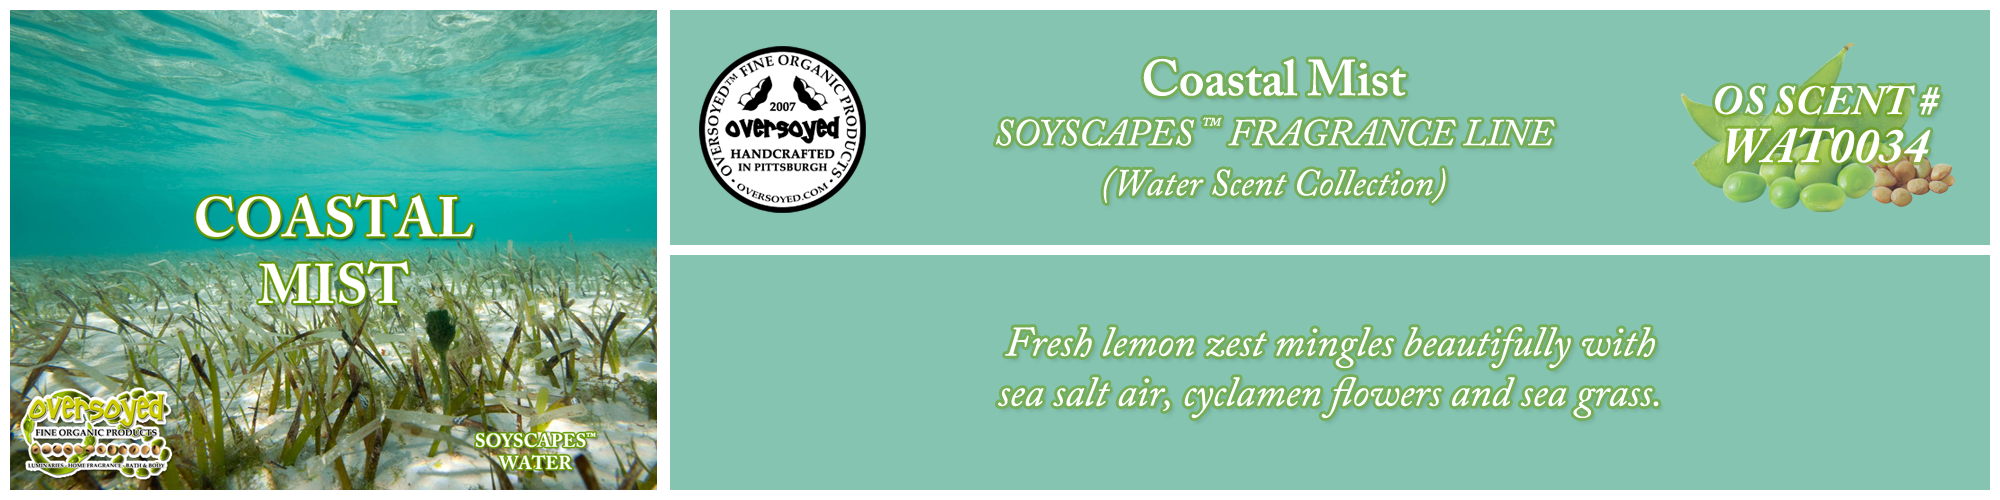 Coastal Mist Handcrafted Products Collection